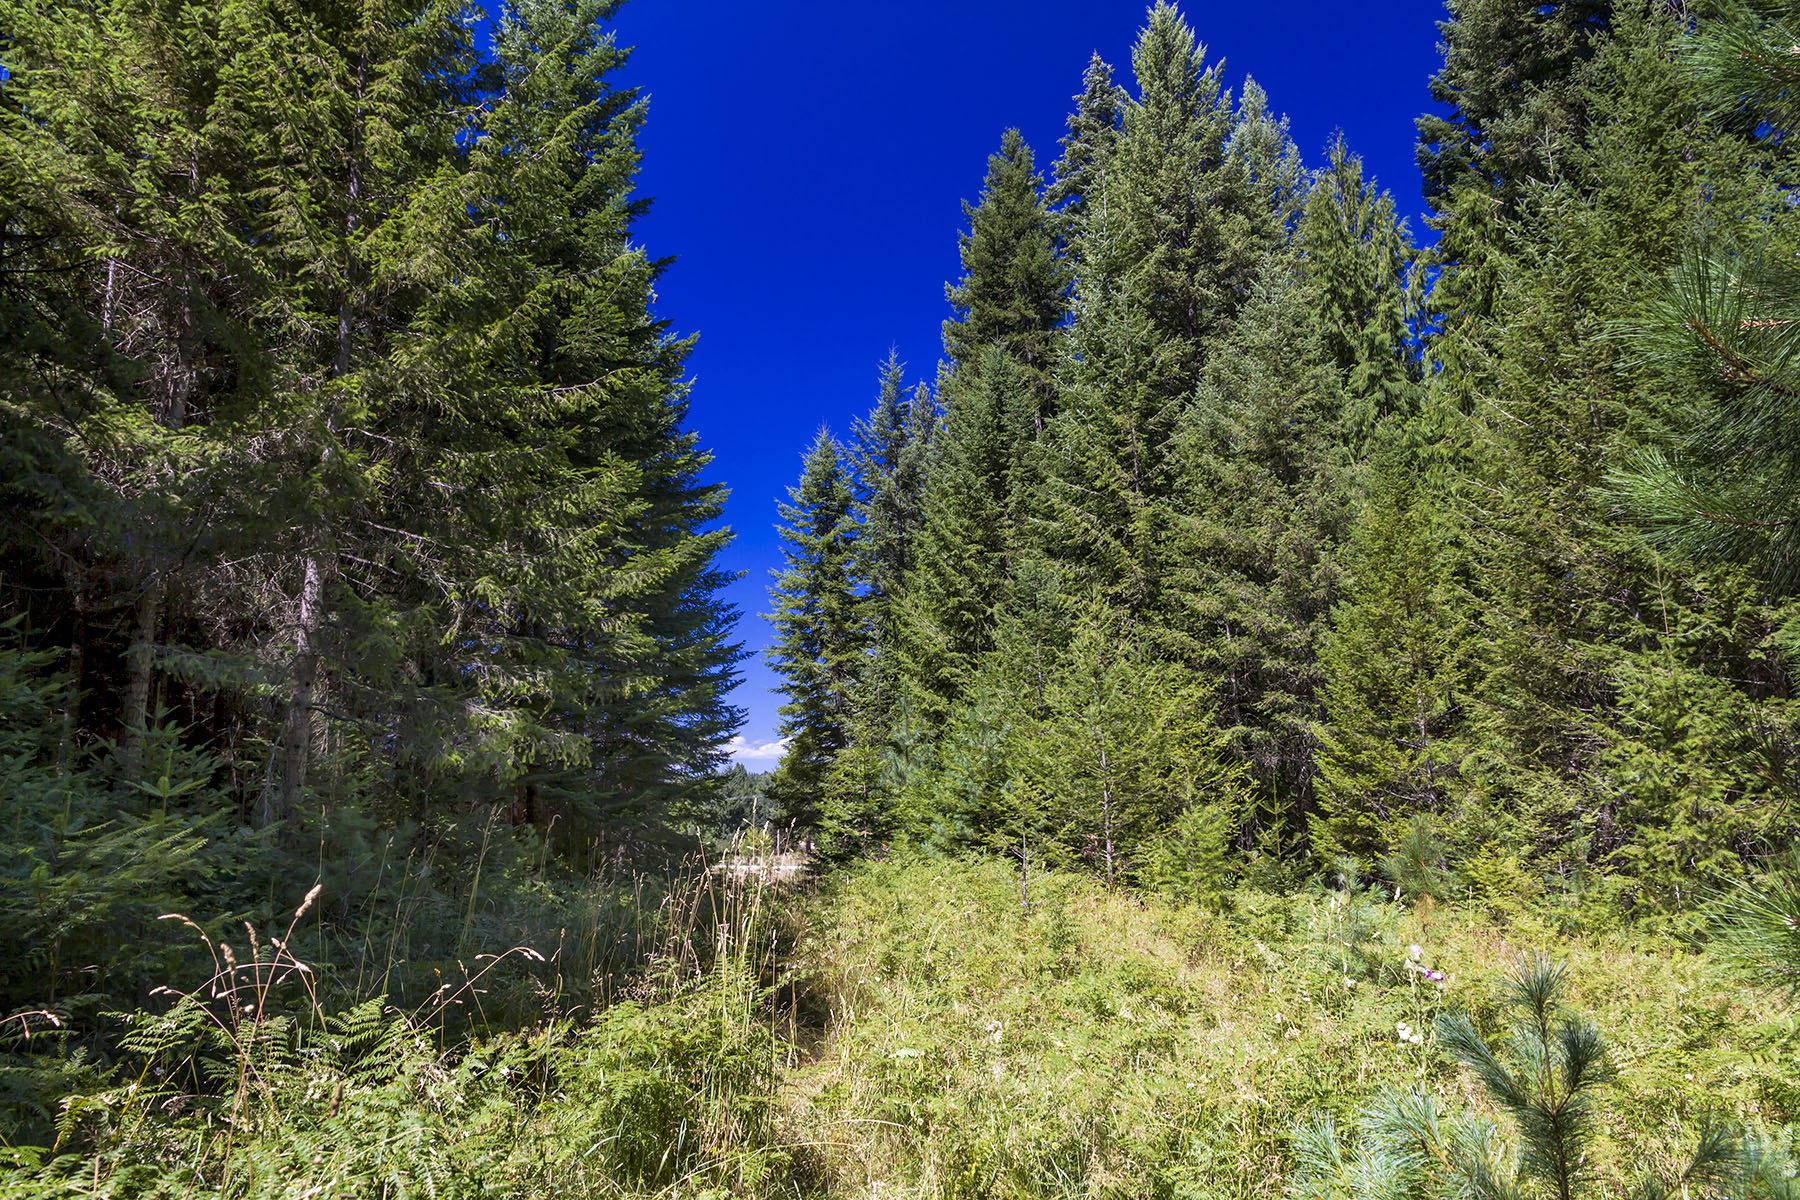 Land for Sale at Creek frontage on Strong Creek Lot 7 Sailor Lane Priest River, Idaho 83856 United States